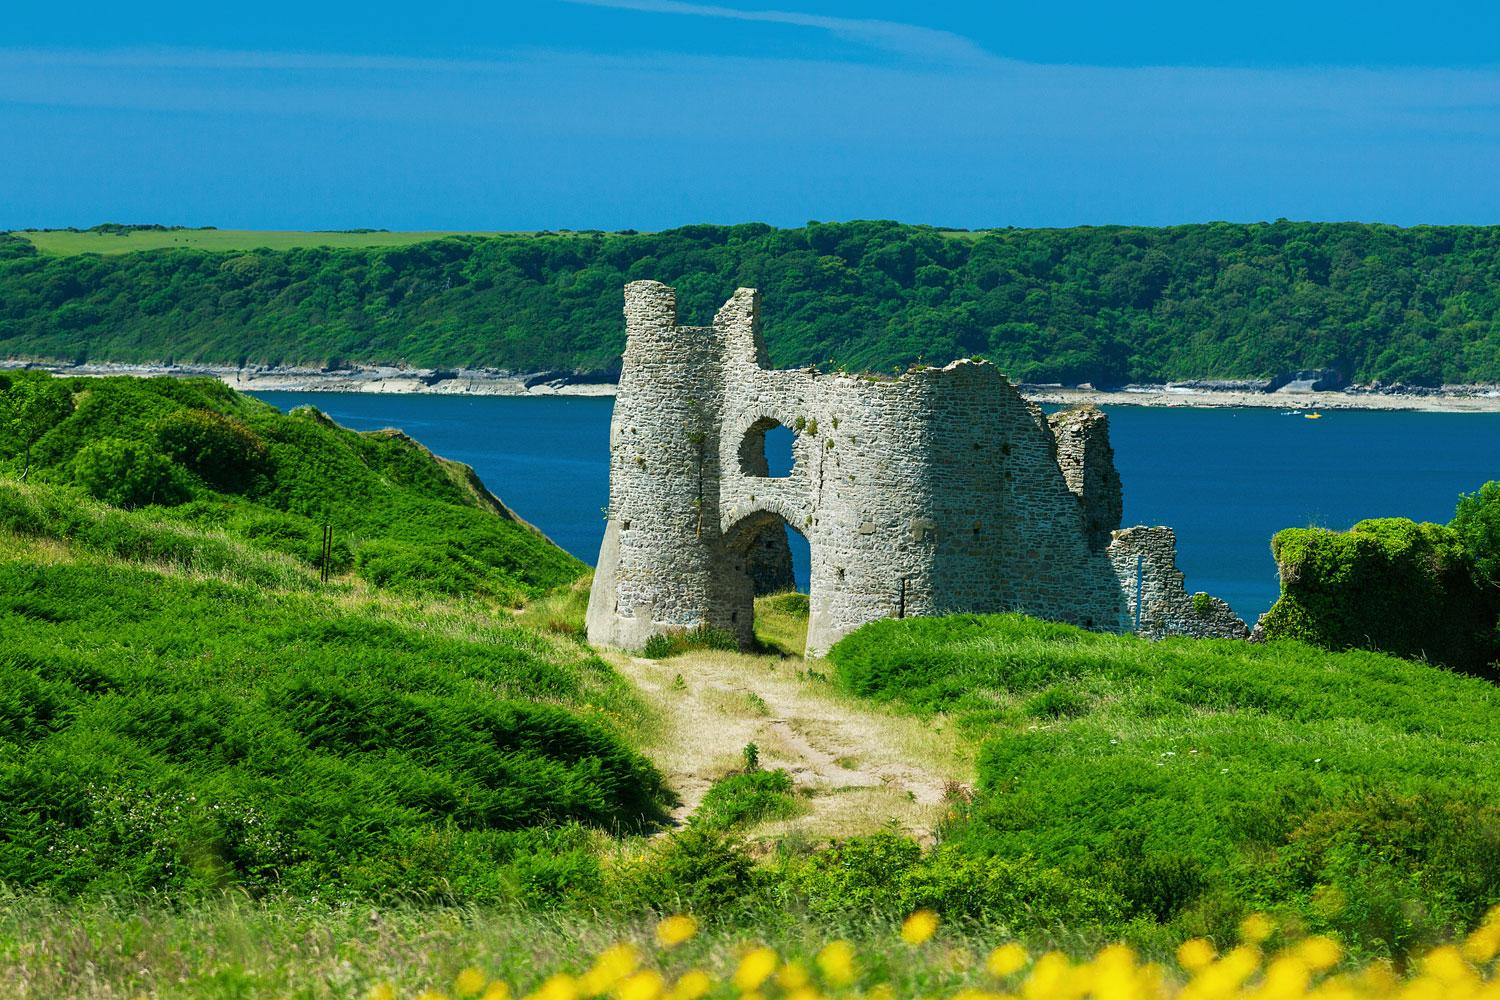 The remains of Pennard Castle